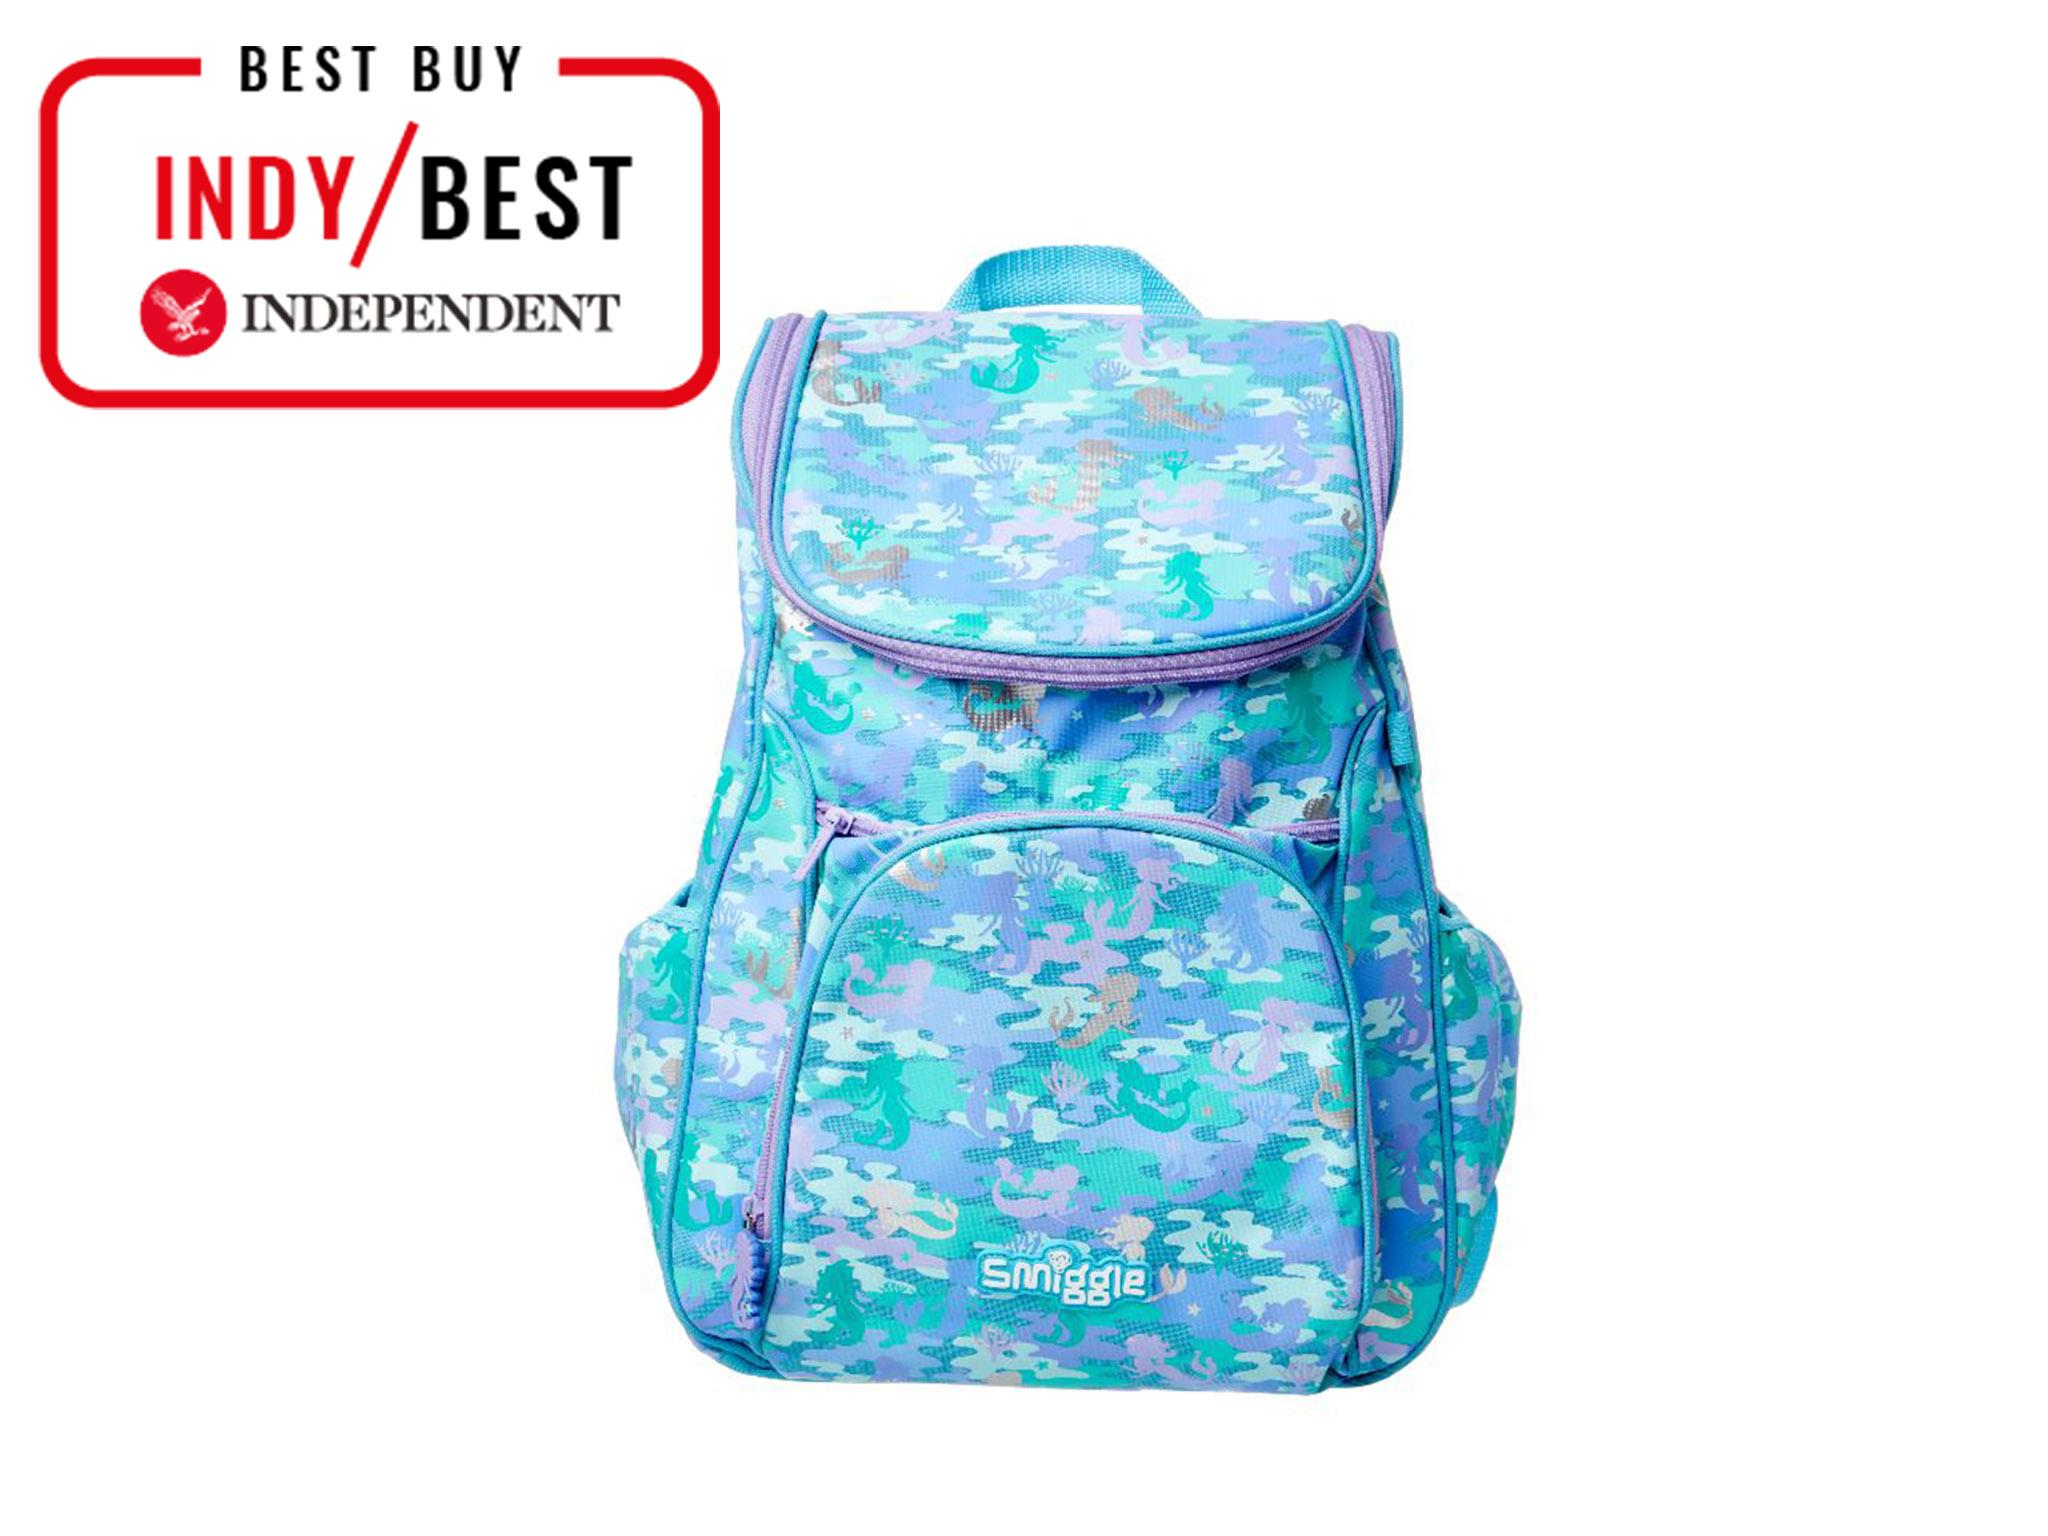 113aab5b1655 All the testers loved this backpack from Aussie stationery brand Smiggle.  They adored the design